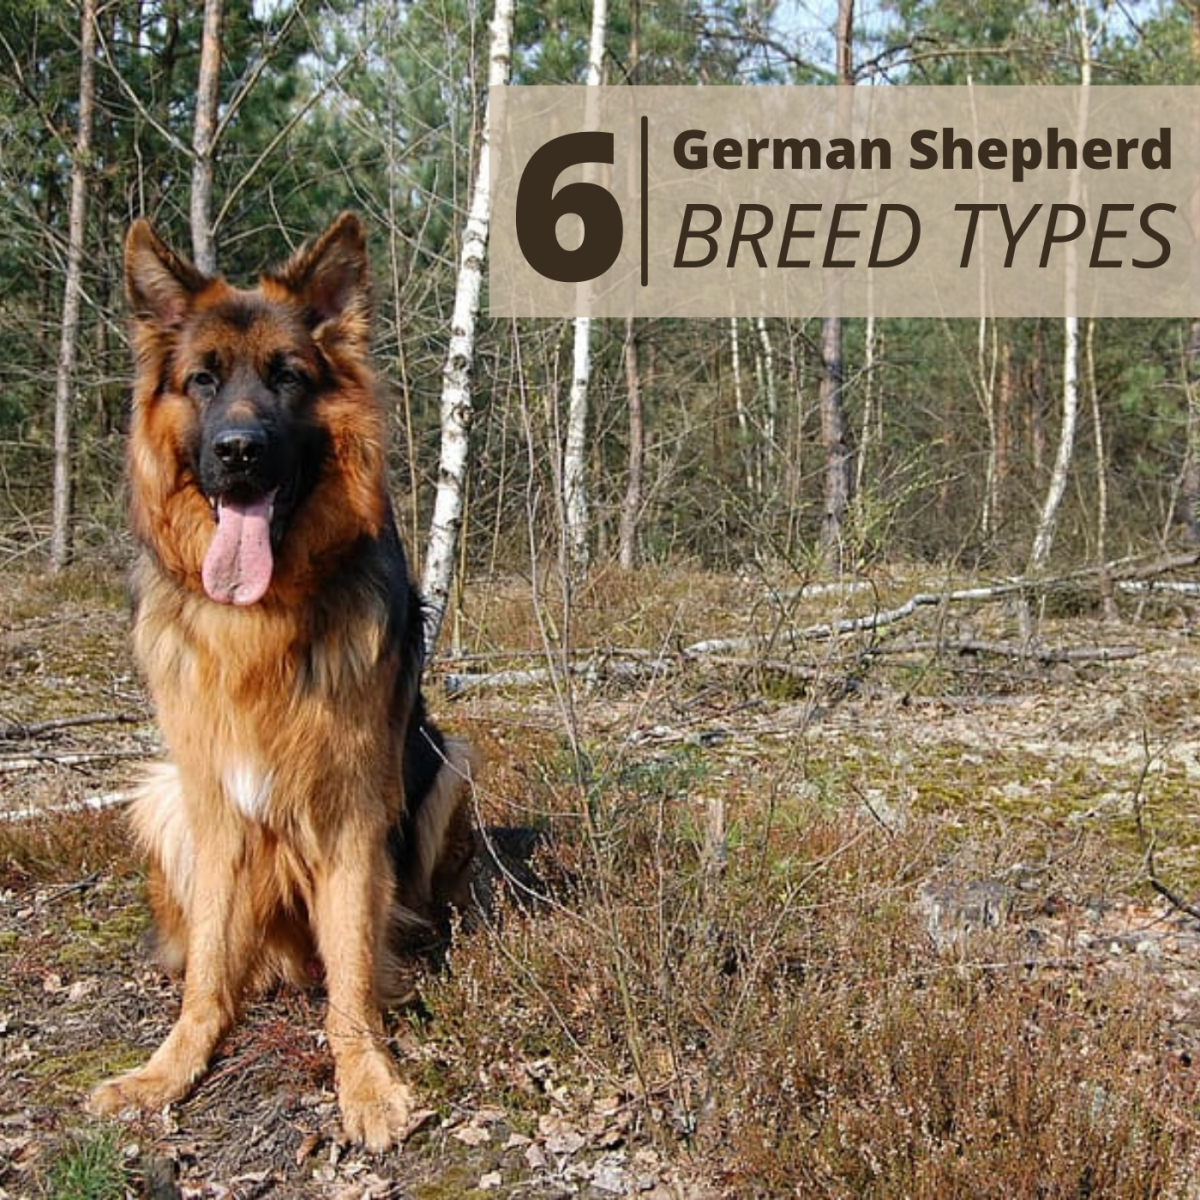 Since the breed was born, a number of distinct varieties of German Shepherd have emerged.